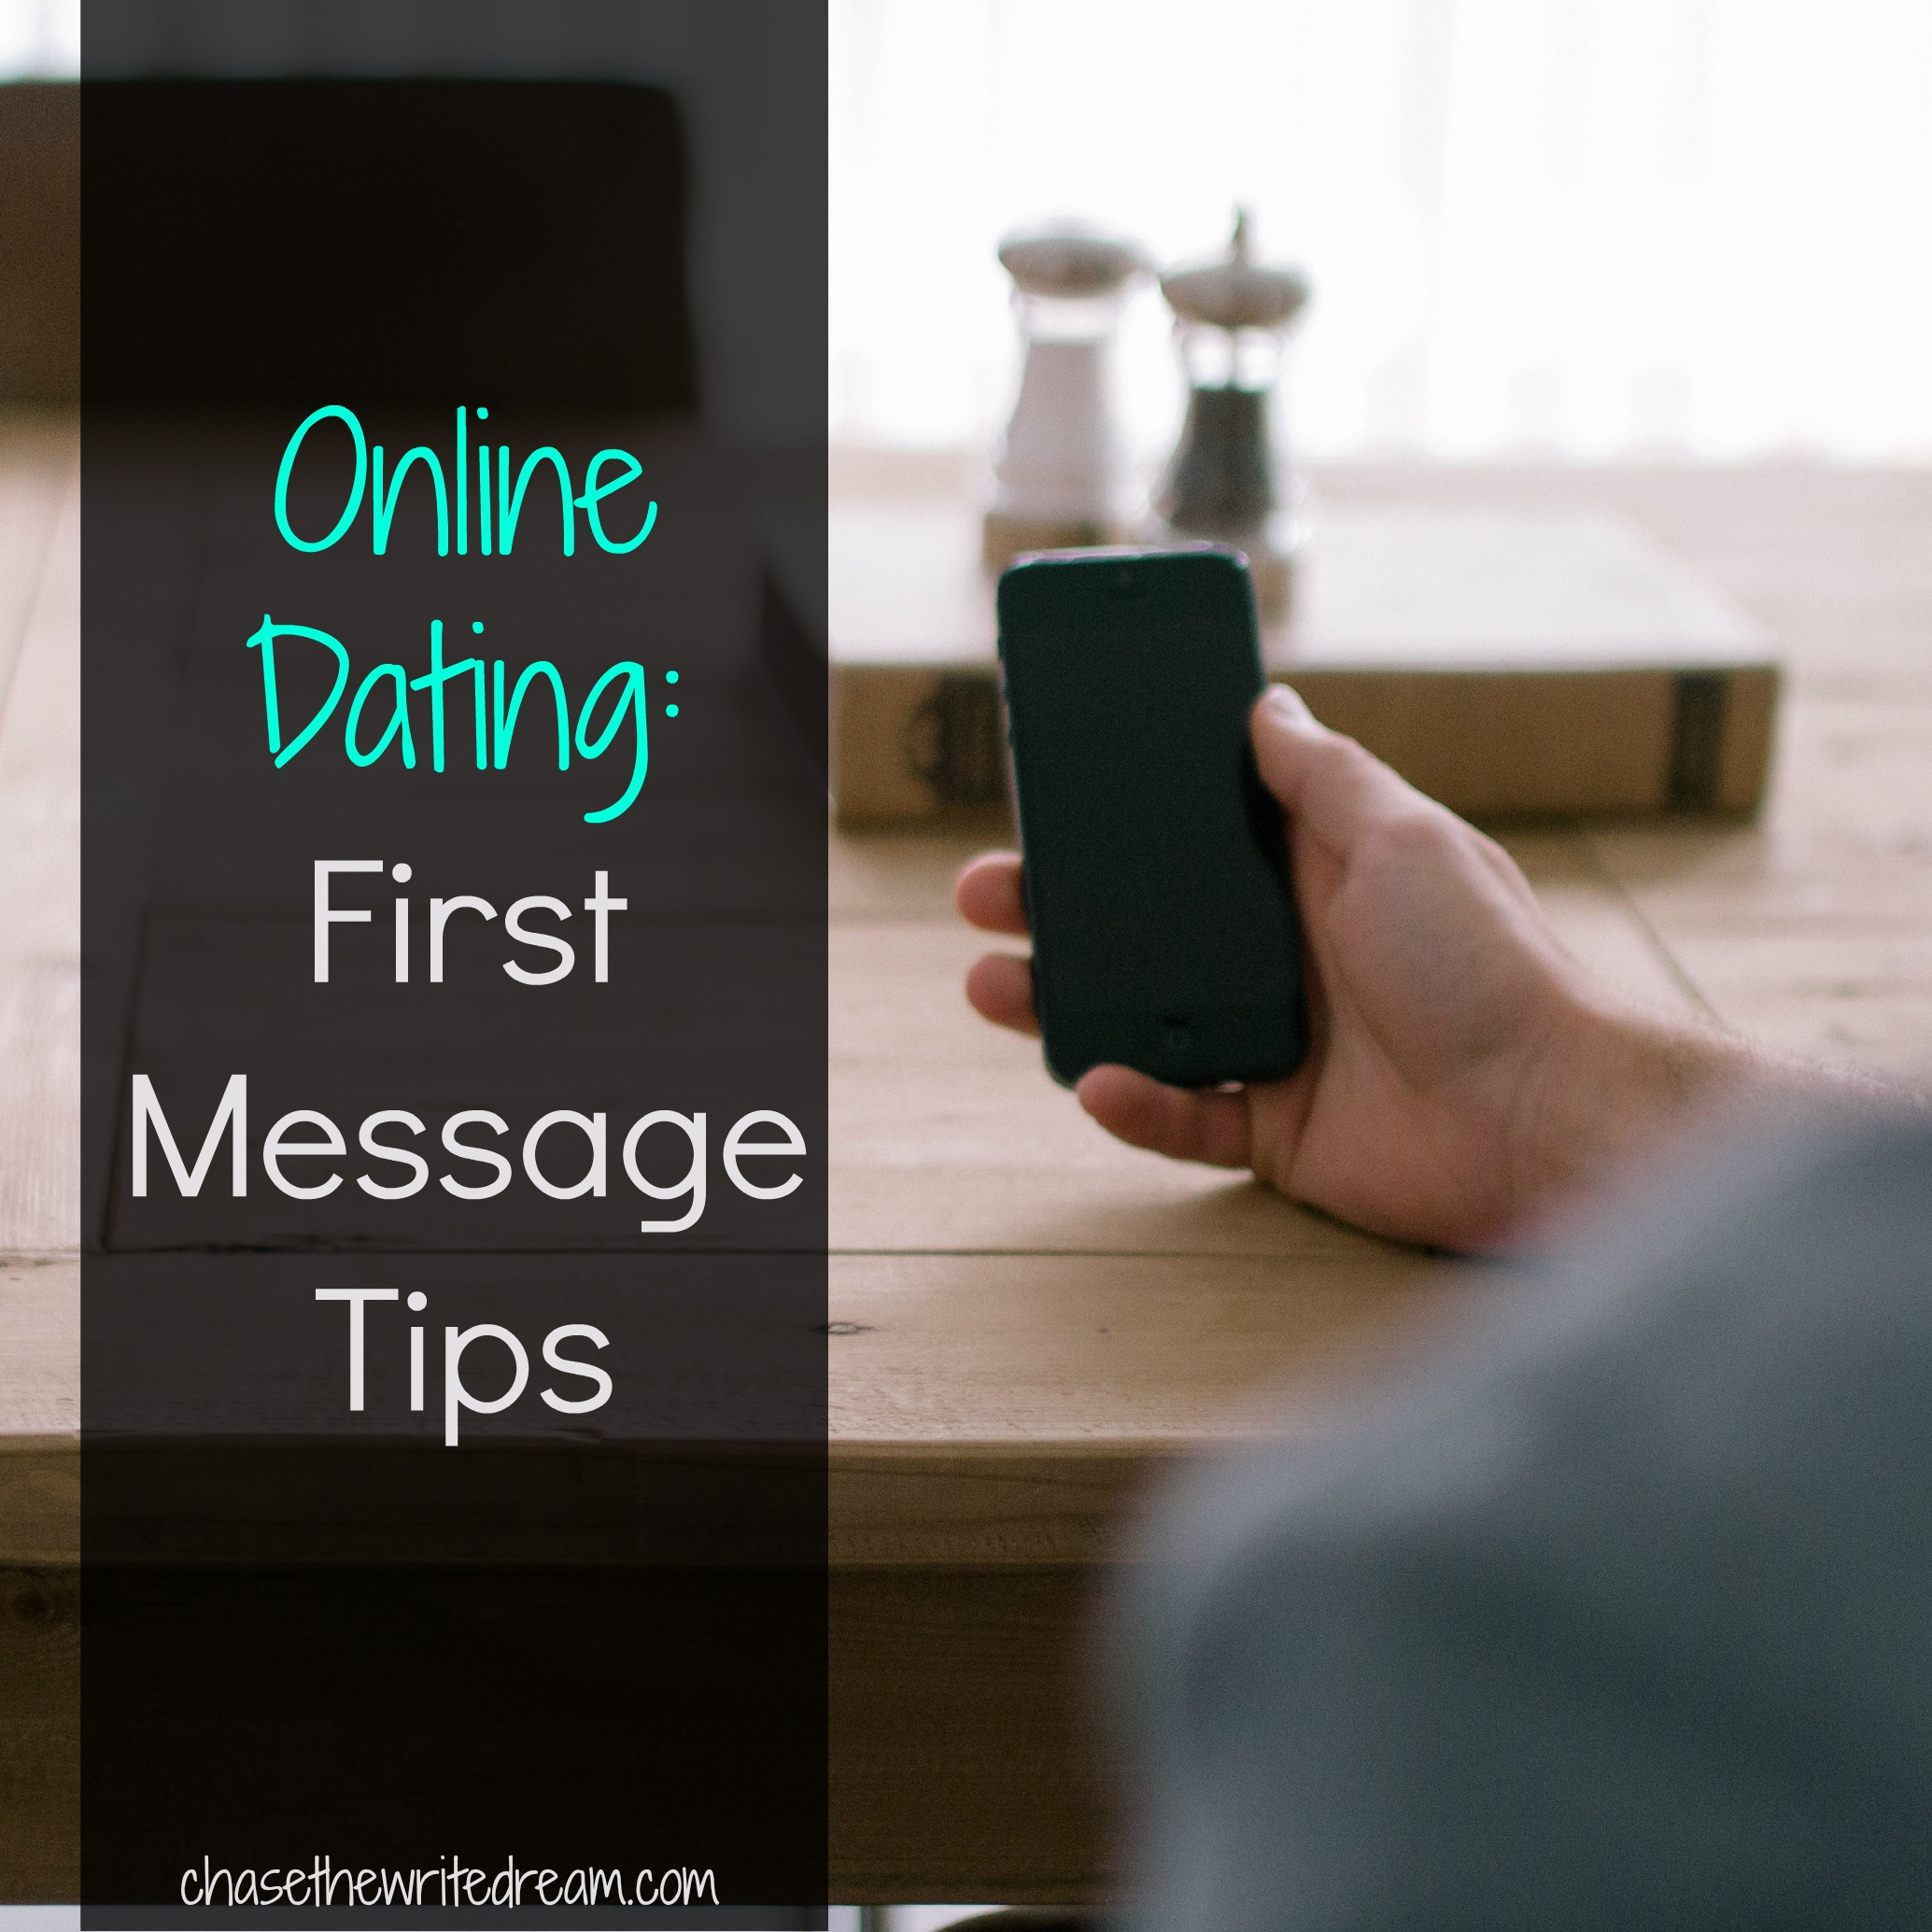 How to message a girl on online dating